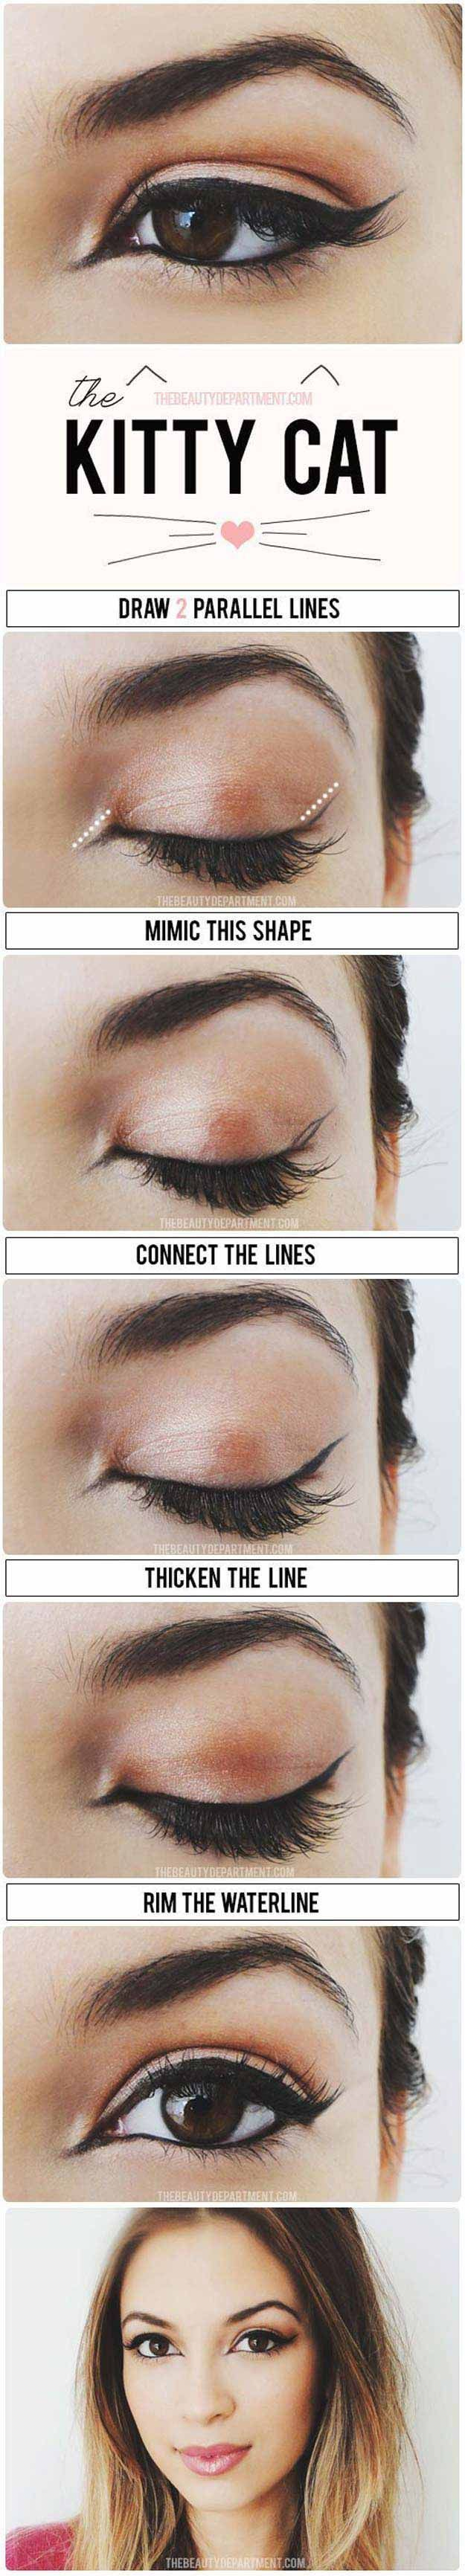 Winged Eyeliner Tutorials - The Cat Eye Stylized- Easy Step By Step Tutorials For Beginners and Hacks Using Tape and a Spoon, Liquid Liner, Thing Pencil Tricks and Awesome Guides for Hooded Eyes - Short Video Tutorial for Perfect Simple Dramatic Looks - thegoddess.com/winged-eyeliner-tutorials